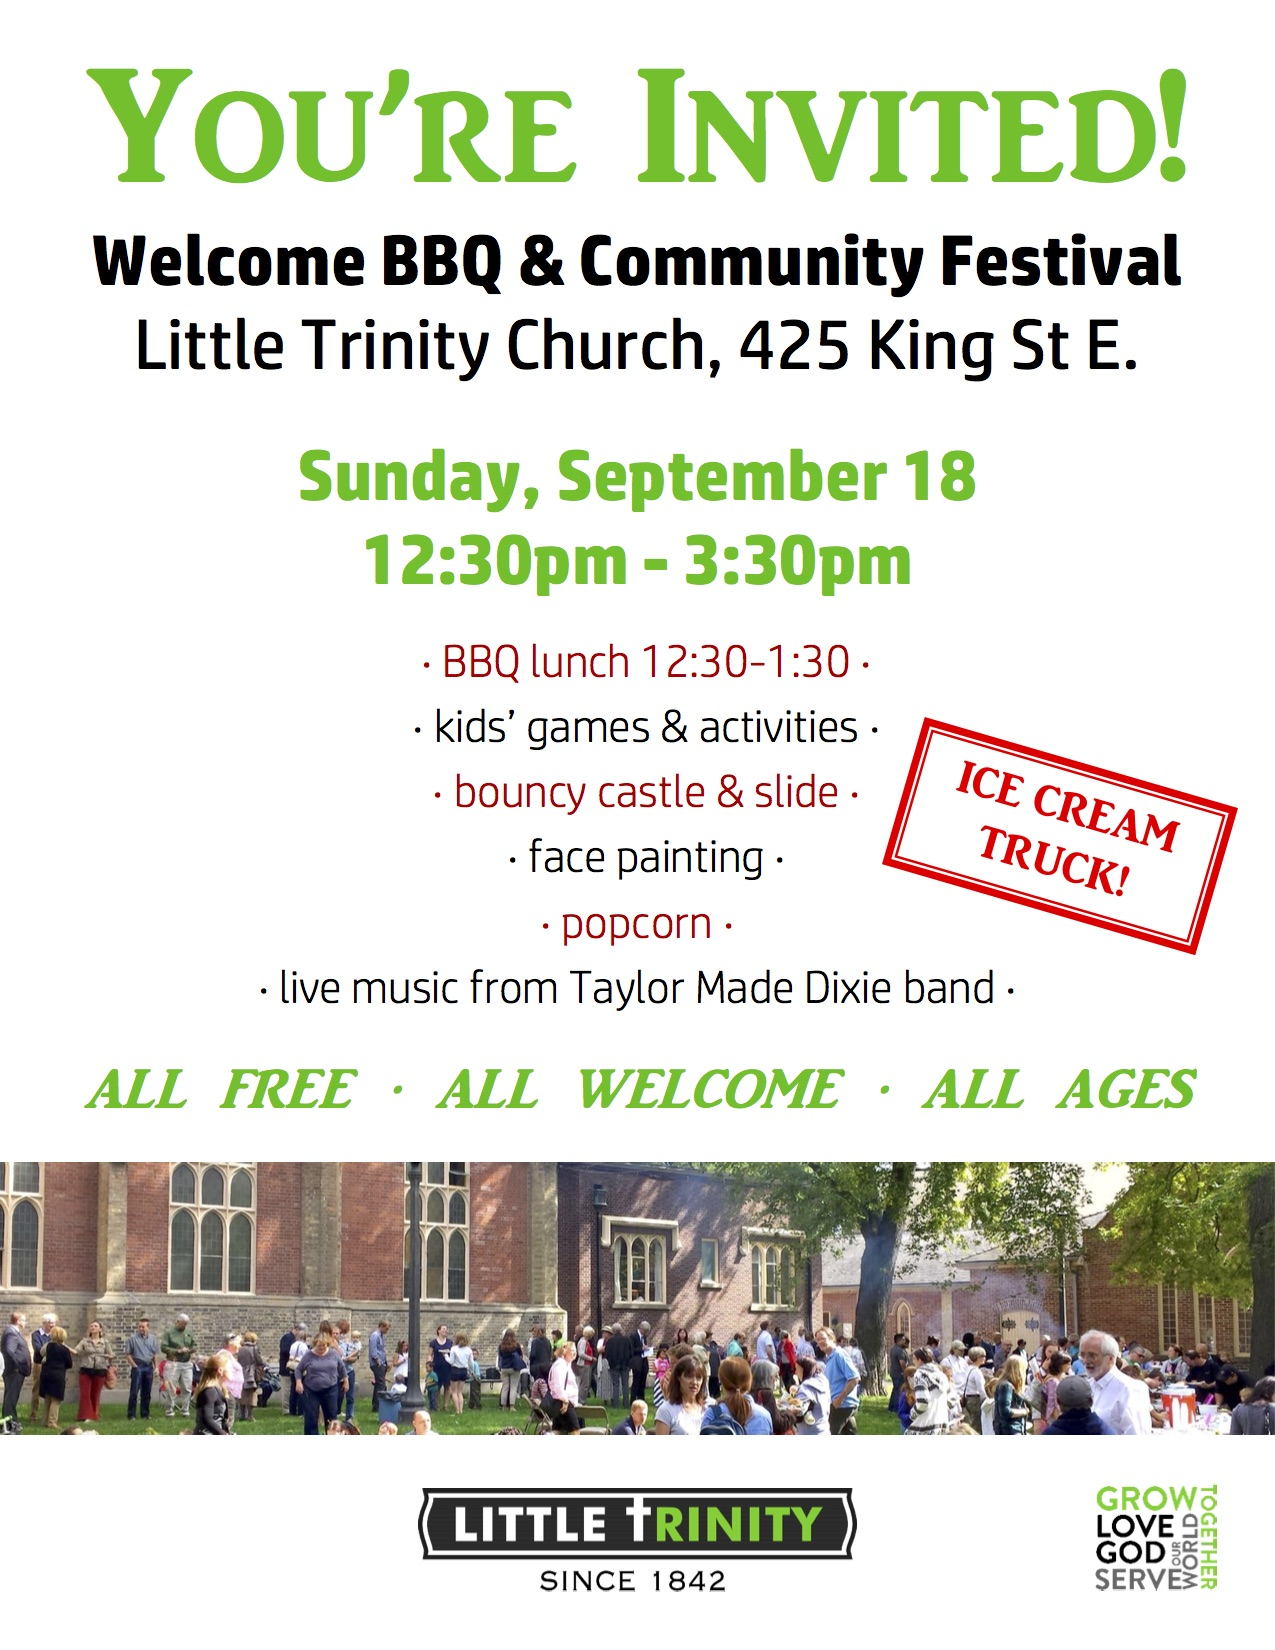 Welcome BBQ and Community Festival at Little Trinity Church Sunday Sept 18th